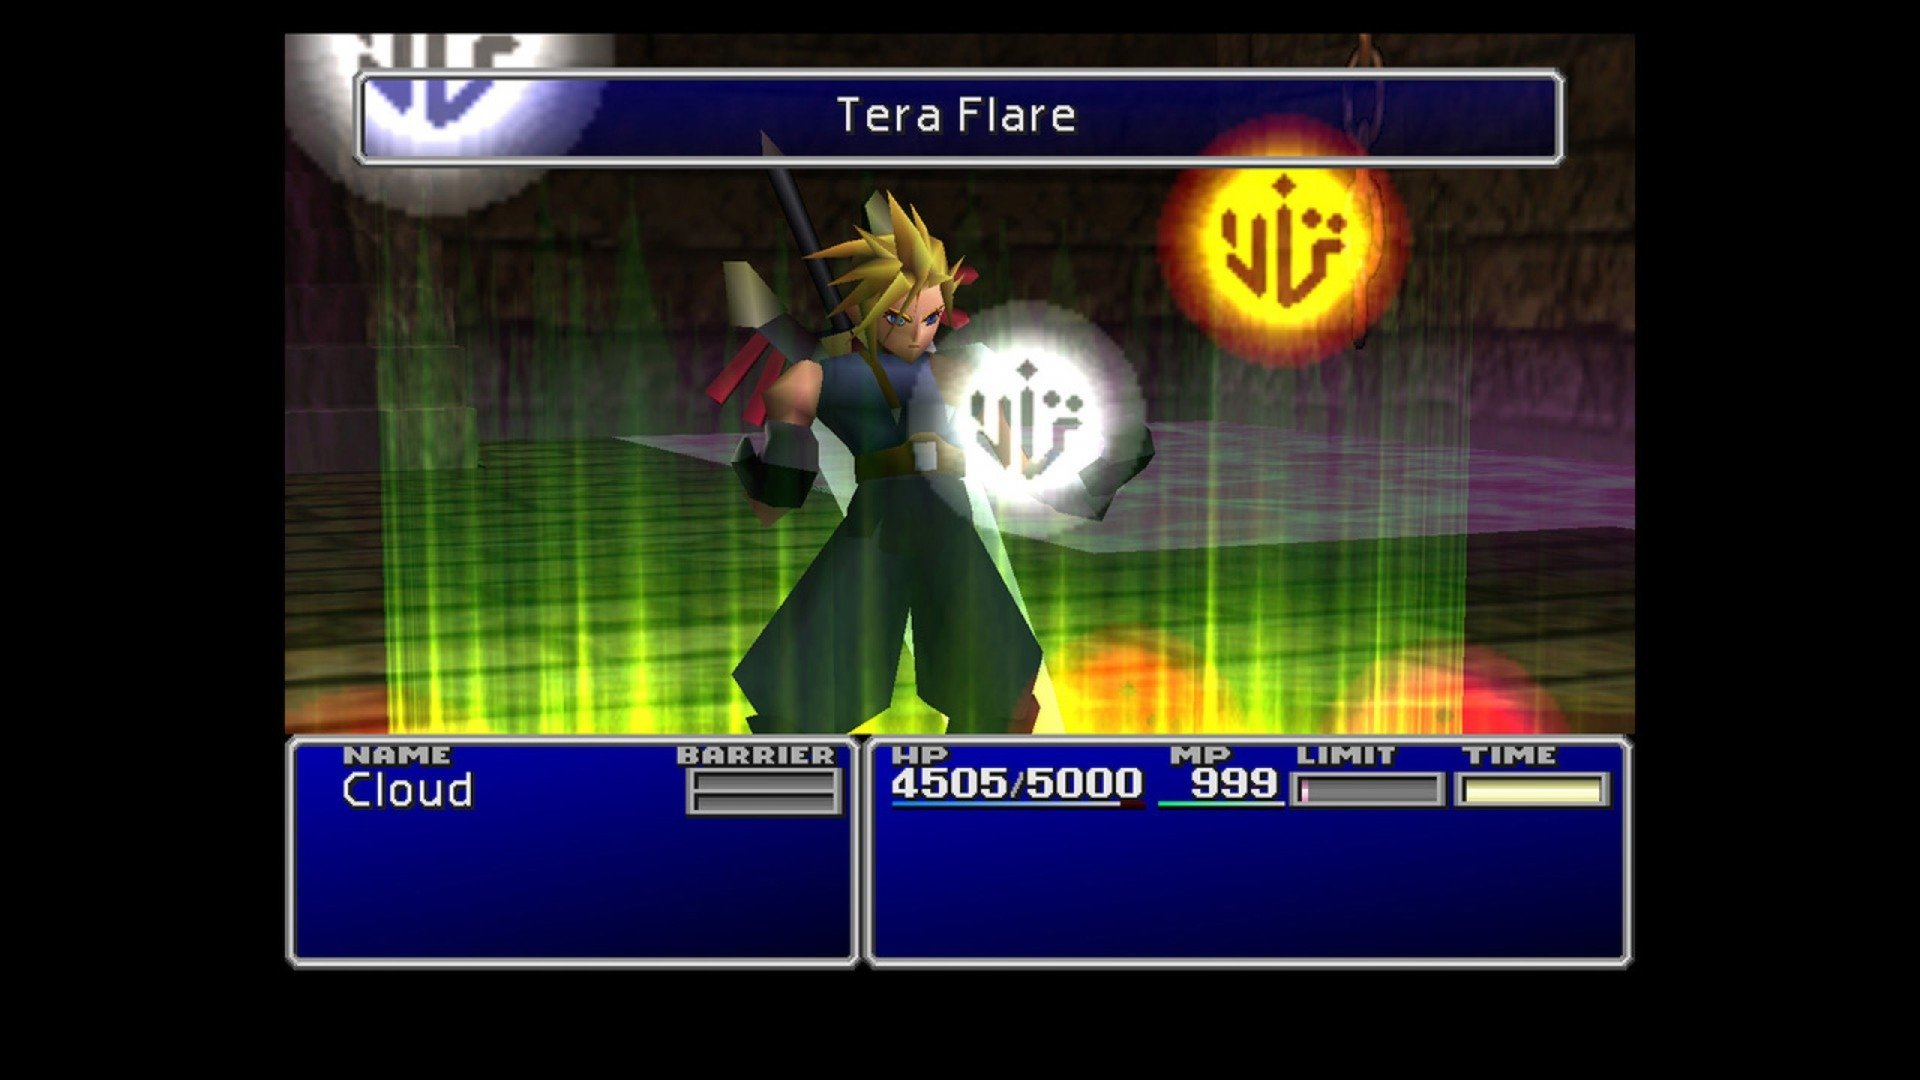 FINAL FANTASY VII [Steam] | Square Enix Store